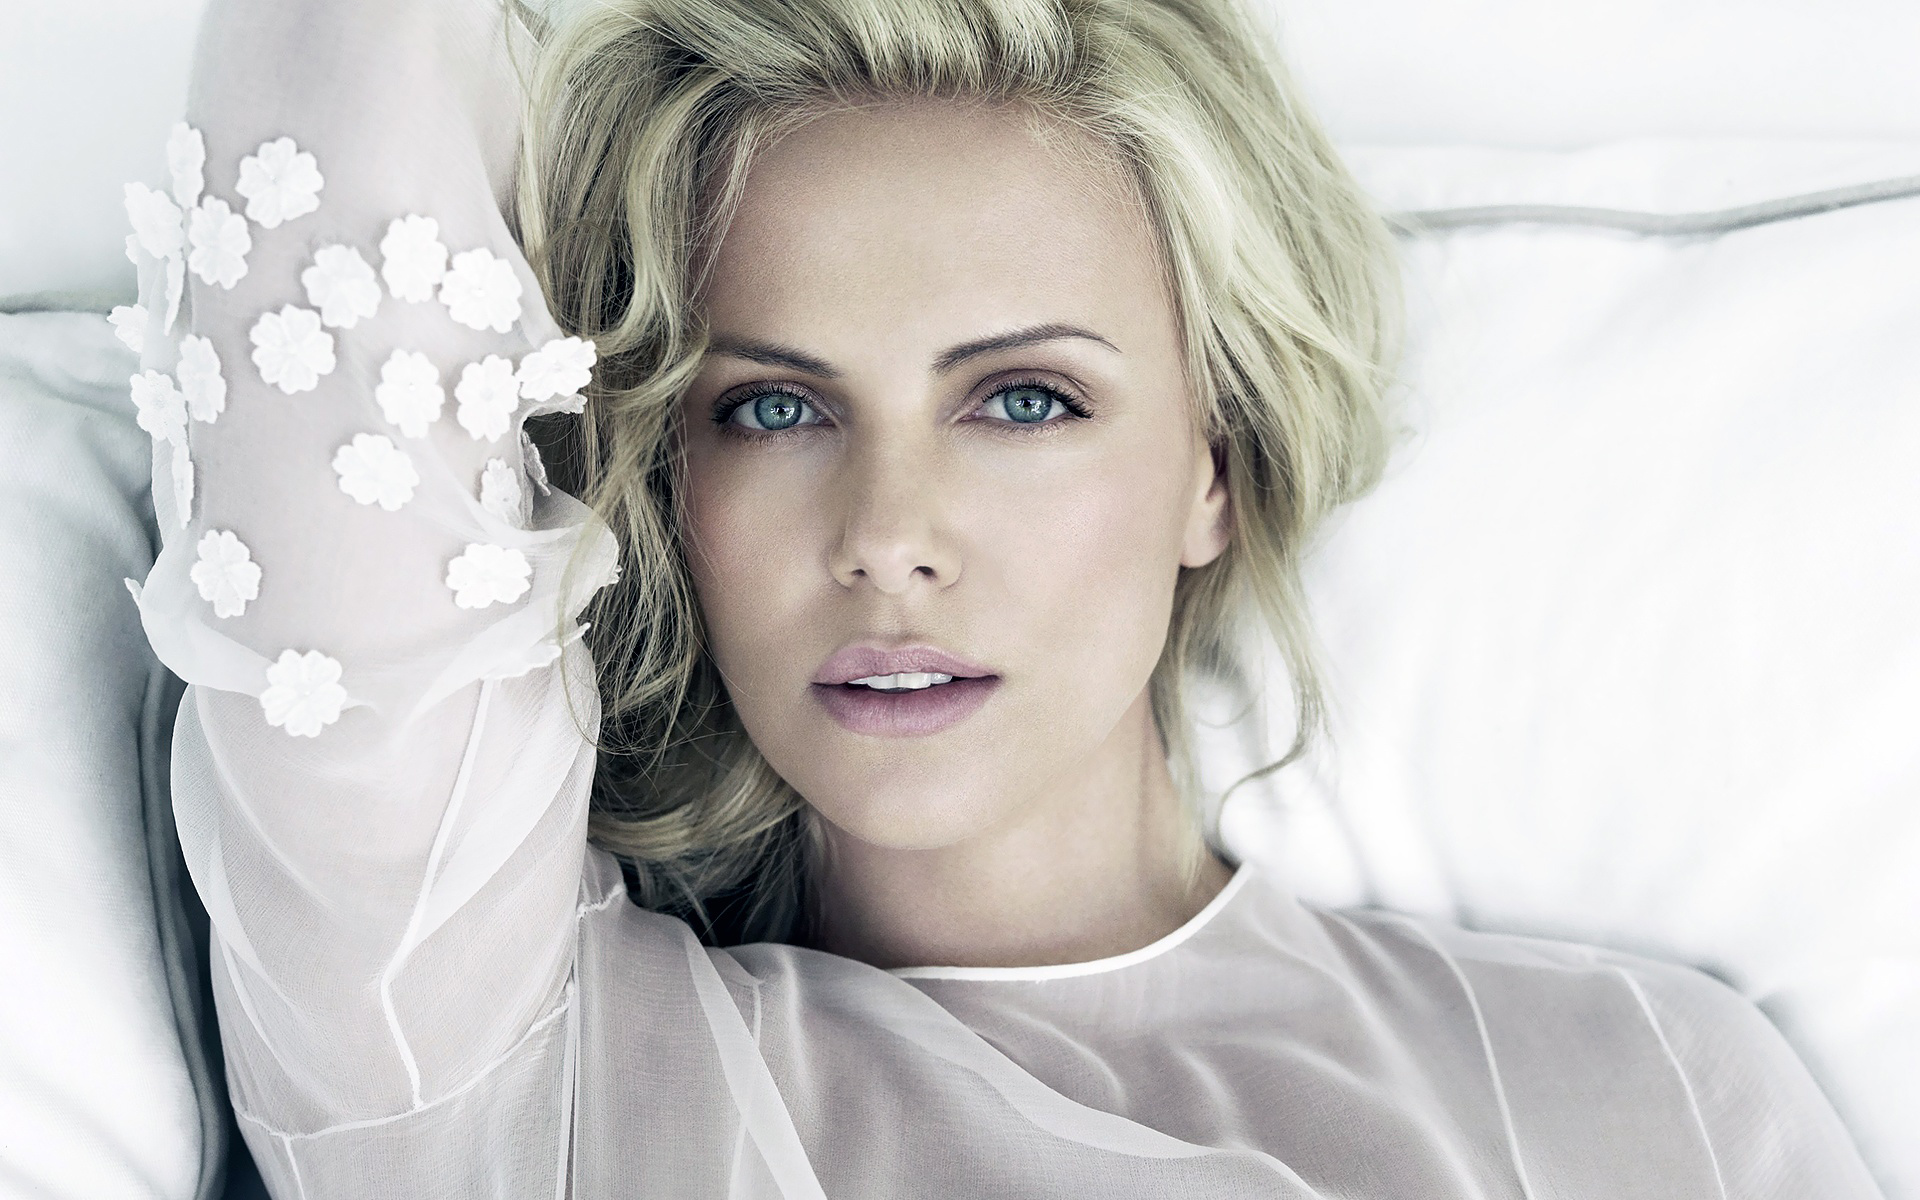 charlize theron mad max filme feminista